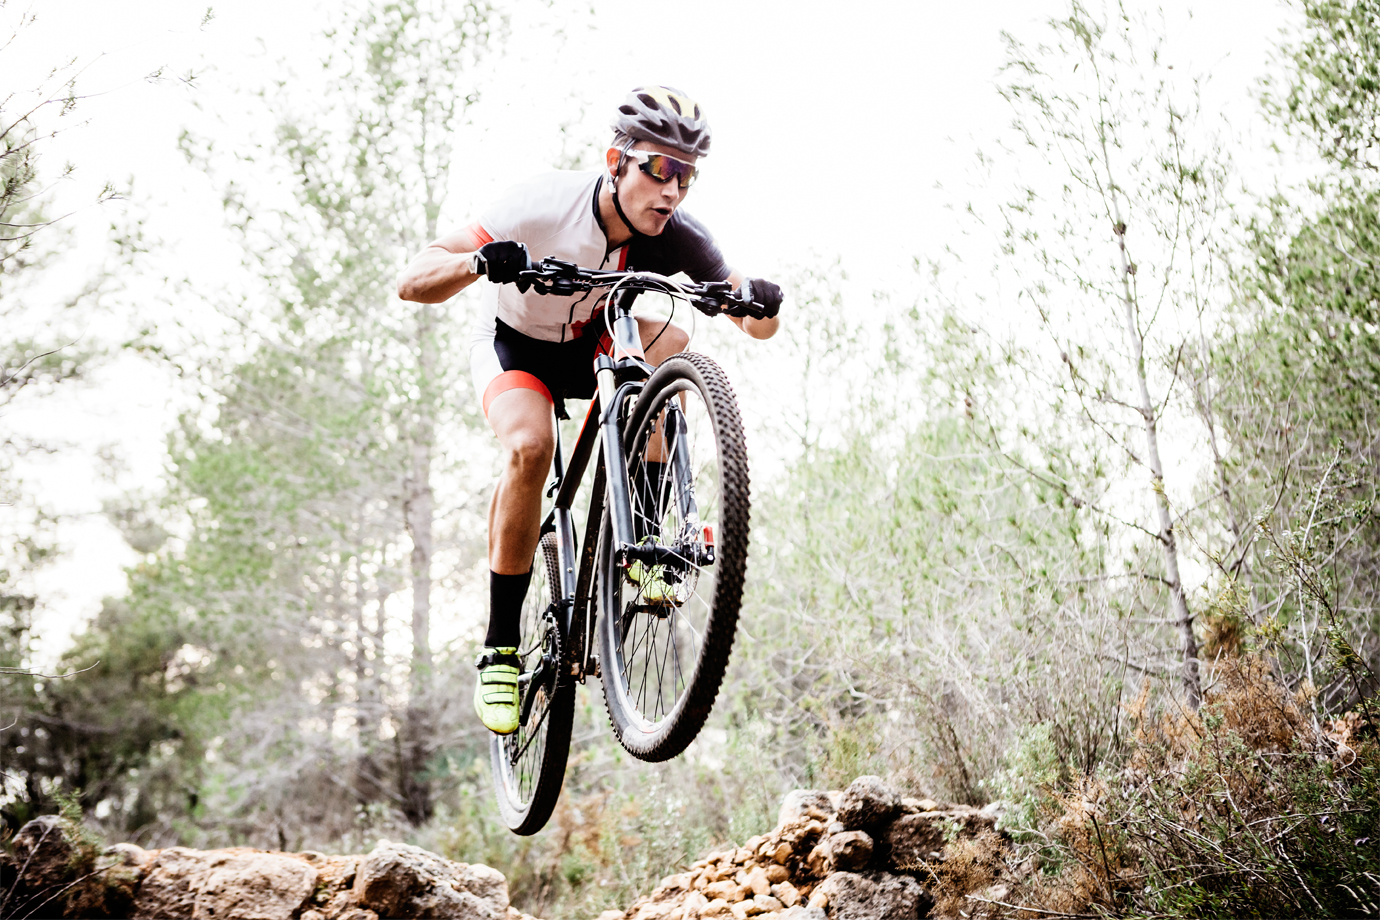 The Best Strength Workout for Mountain Bikers